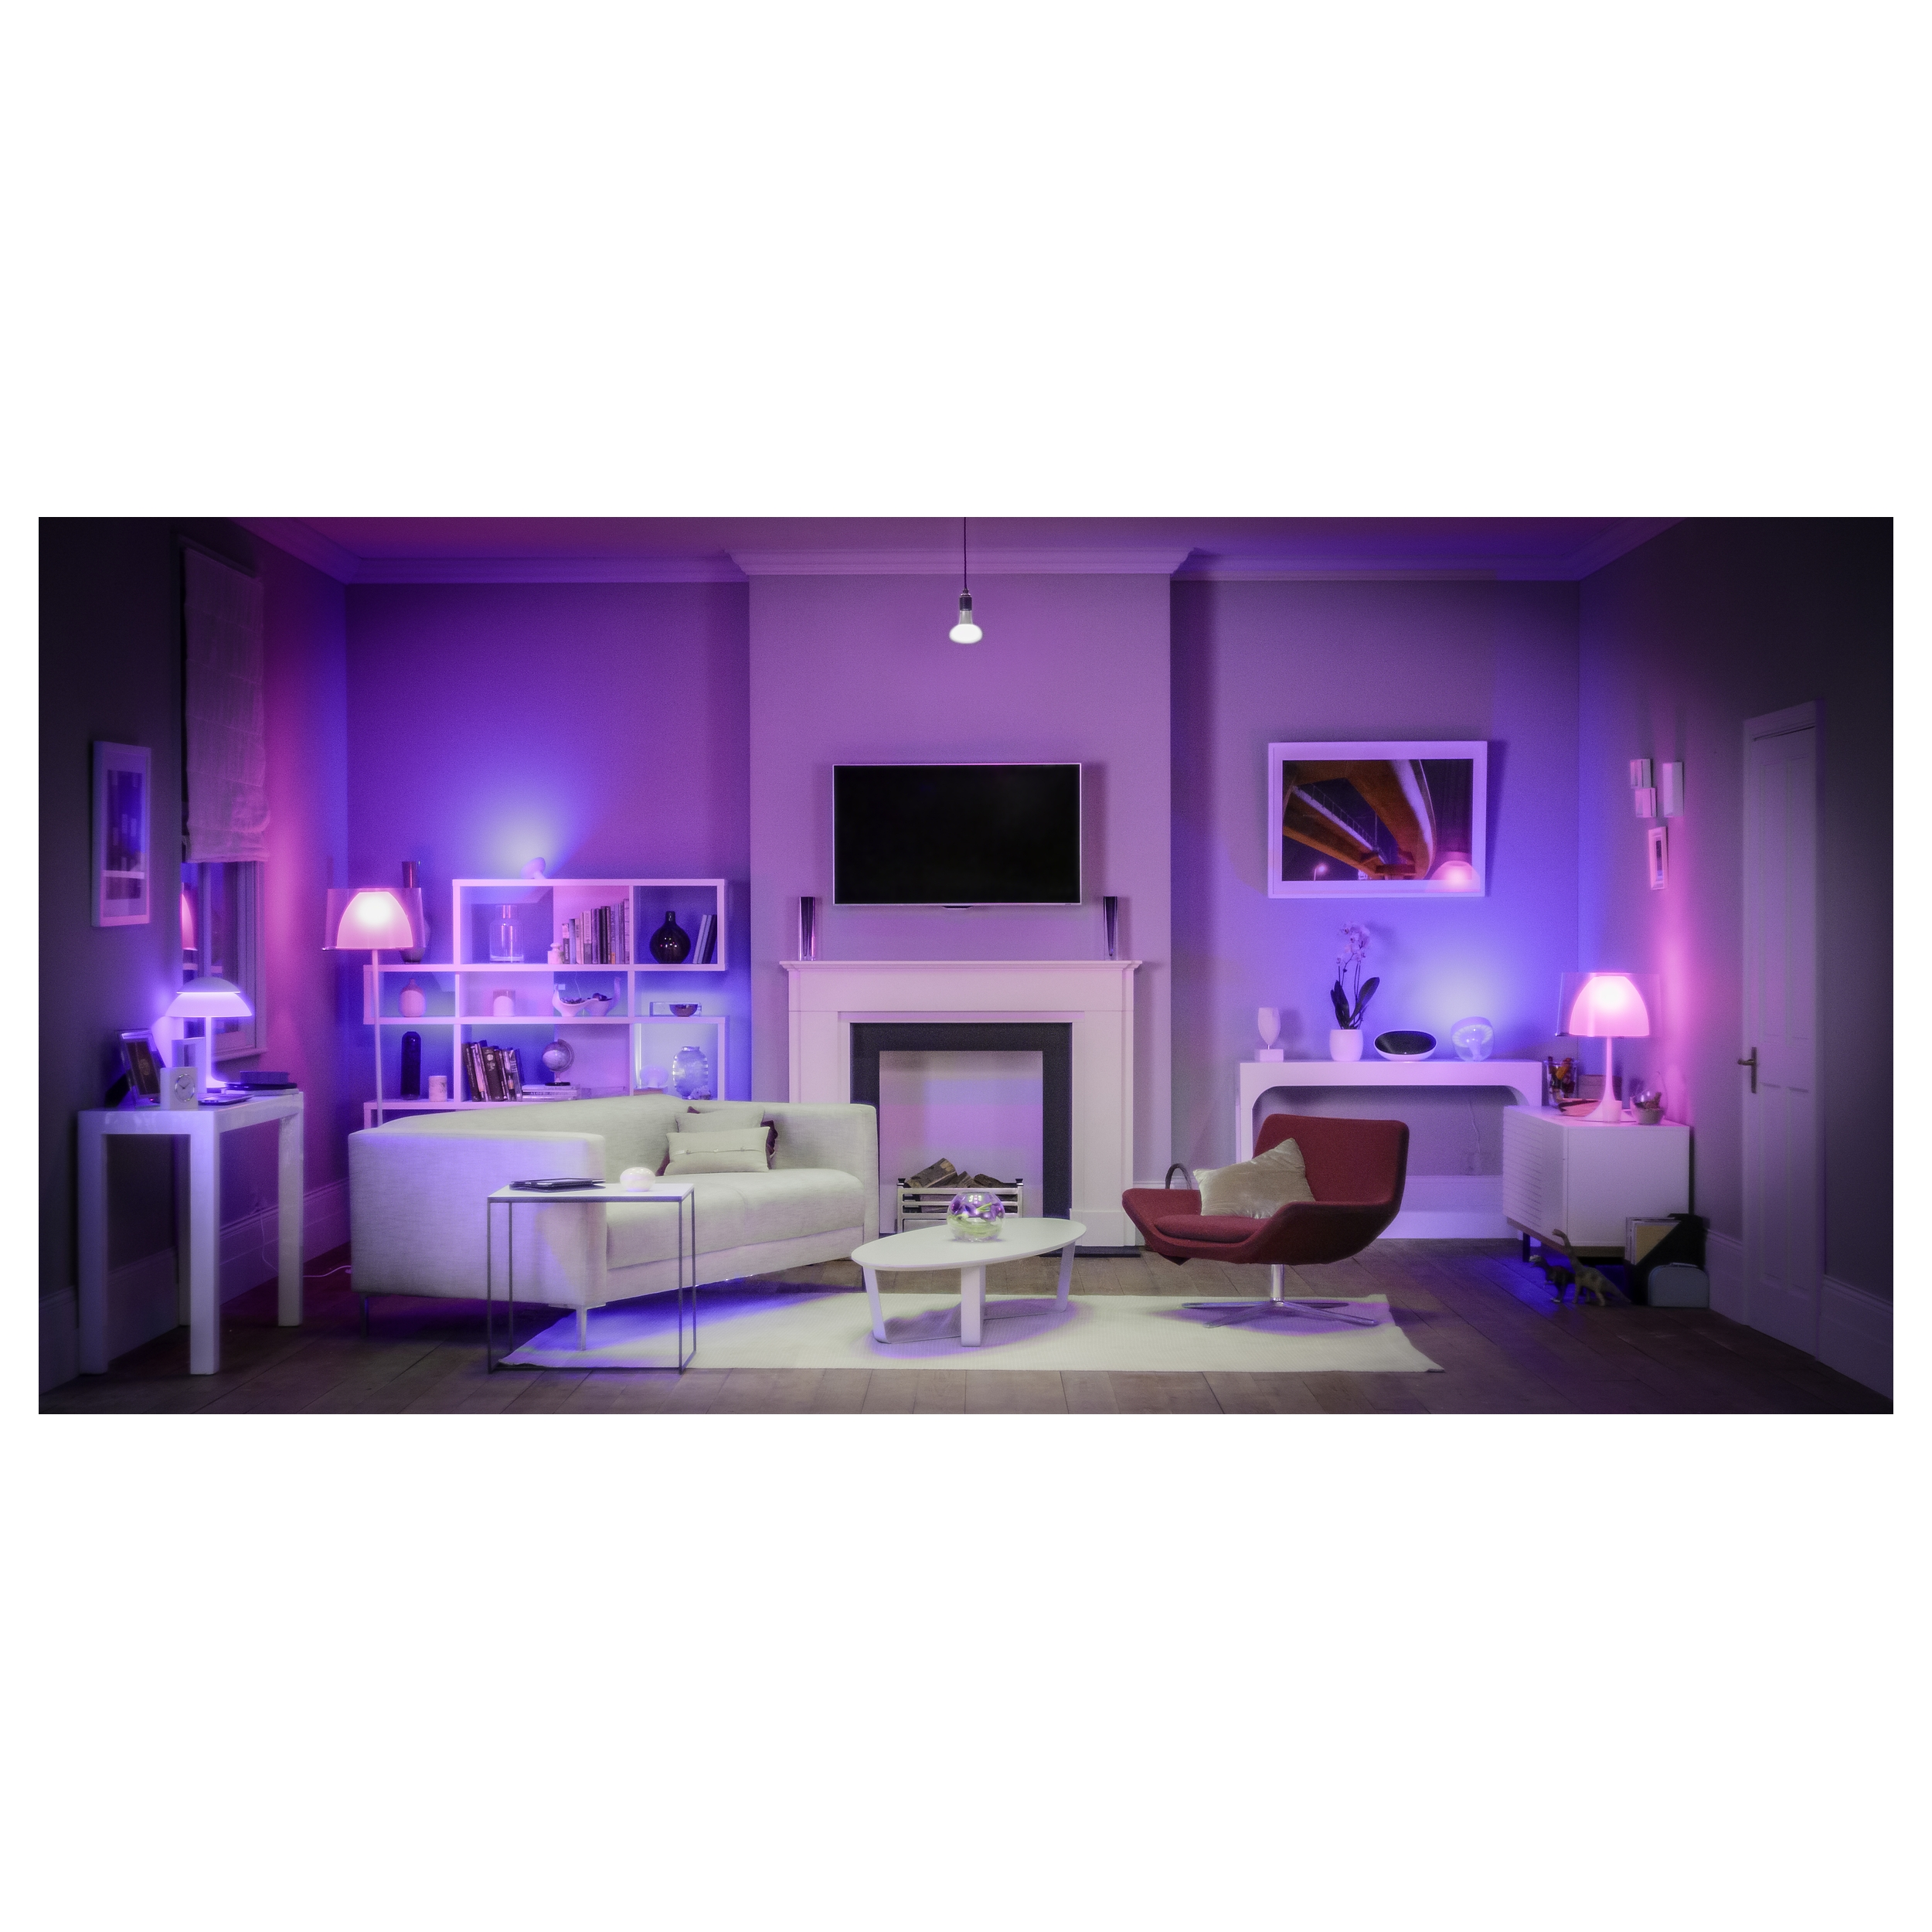 philips hue led personal wireless lighting starter pack 3 lamp bulbs. Black Bedroom Furniture Sets. Home Design Ideas